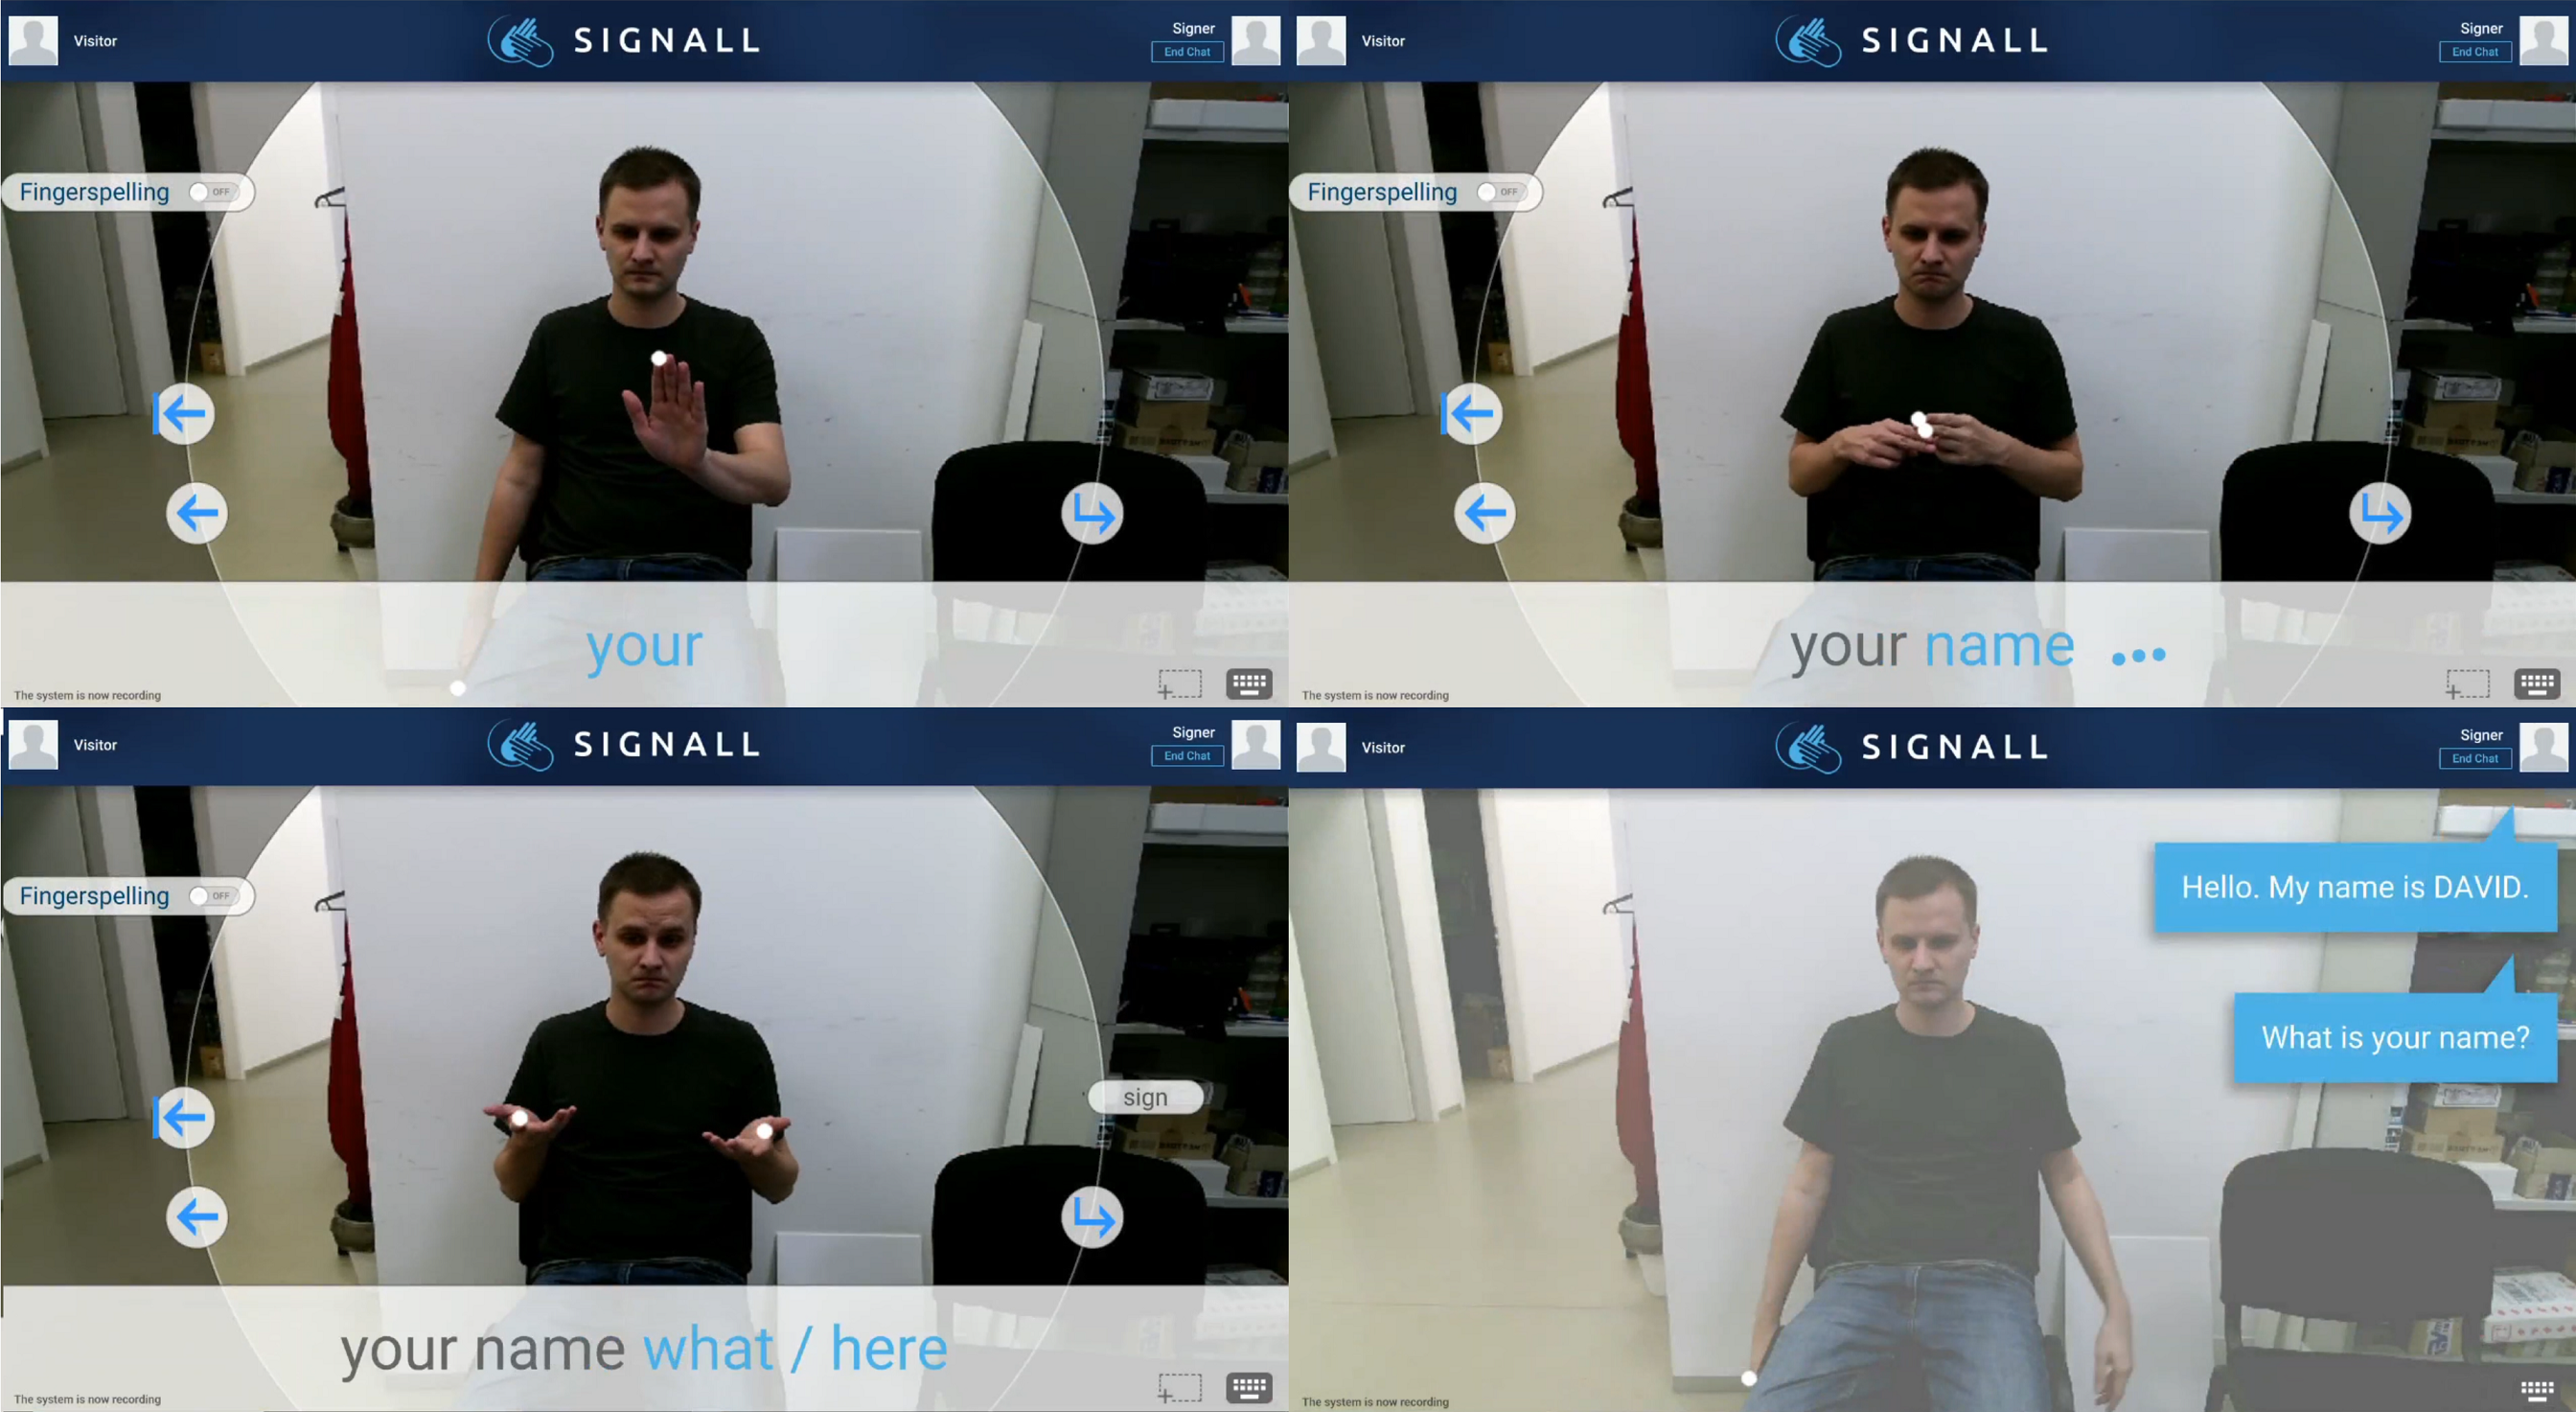 Last stages of testing: gloveless version of SignAll Chat